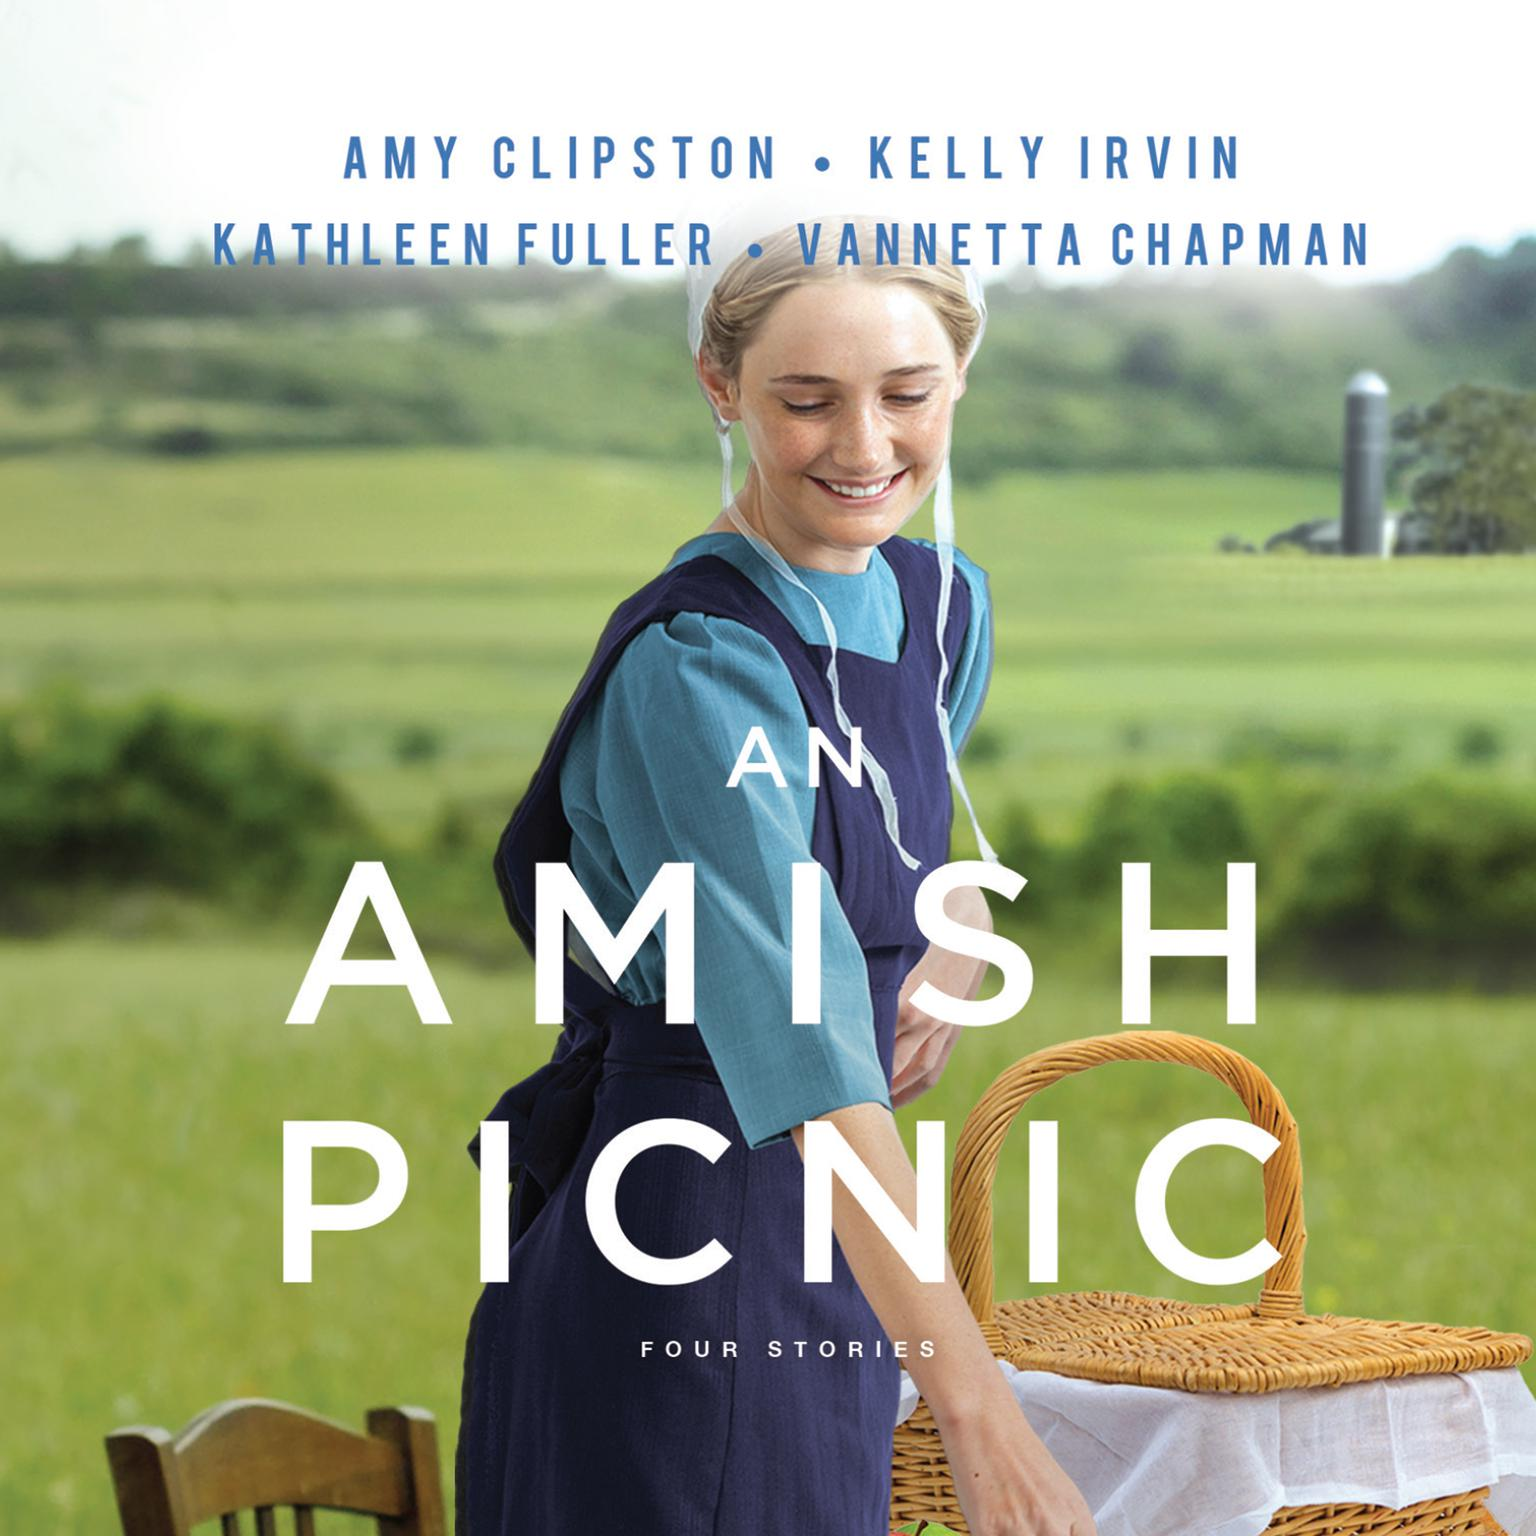 An Amish Picnic: Four Stories Audiobook, by Amy Clipston